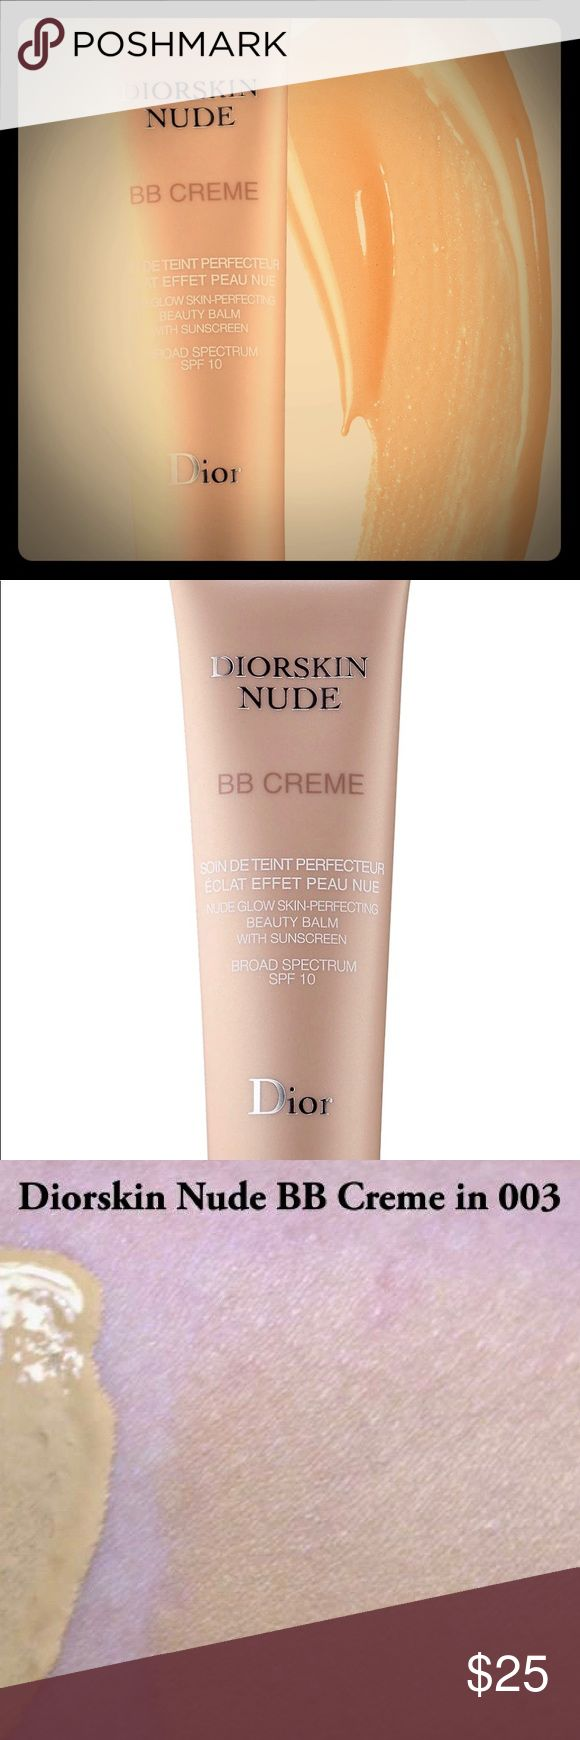 DIORSKIN NUDE | BB CRÈME | in Light to Med - 003 USED MAYBE 2-3 TIMES AT MOST!! EXCELLENT USED CONDITION!! Diorskin Nude BB Creme provides the benefits of skin care and makeup in a fresh and airy formula. Enhanced with mineralized floral water and a blend of antioxidants, it moisturizes, smooths, protects, and corrects skin with sheer coverage. Available in expert shades to match every skin tone, the complexion is illuminated with a unique fresh glow and dewy finish. Dior Makeup Foundation